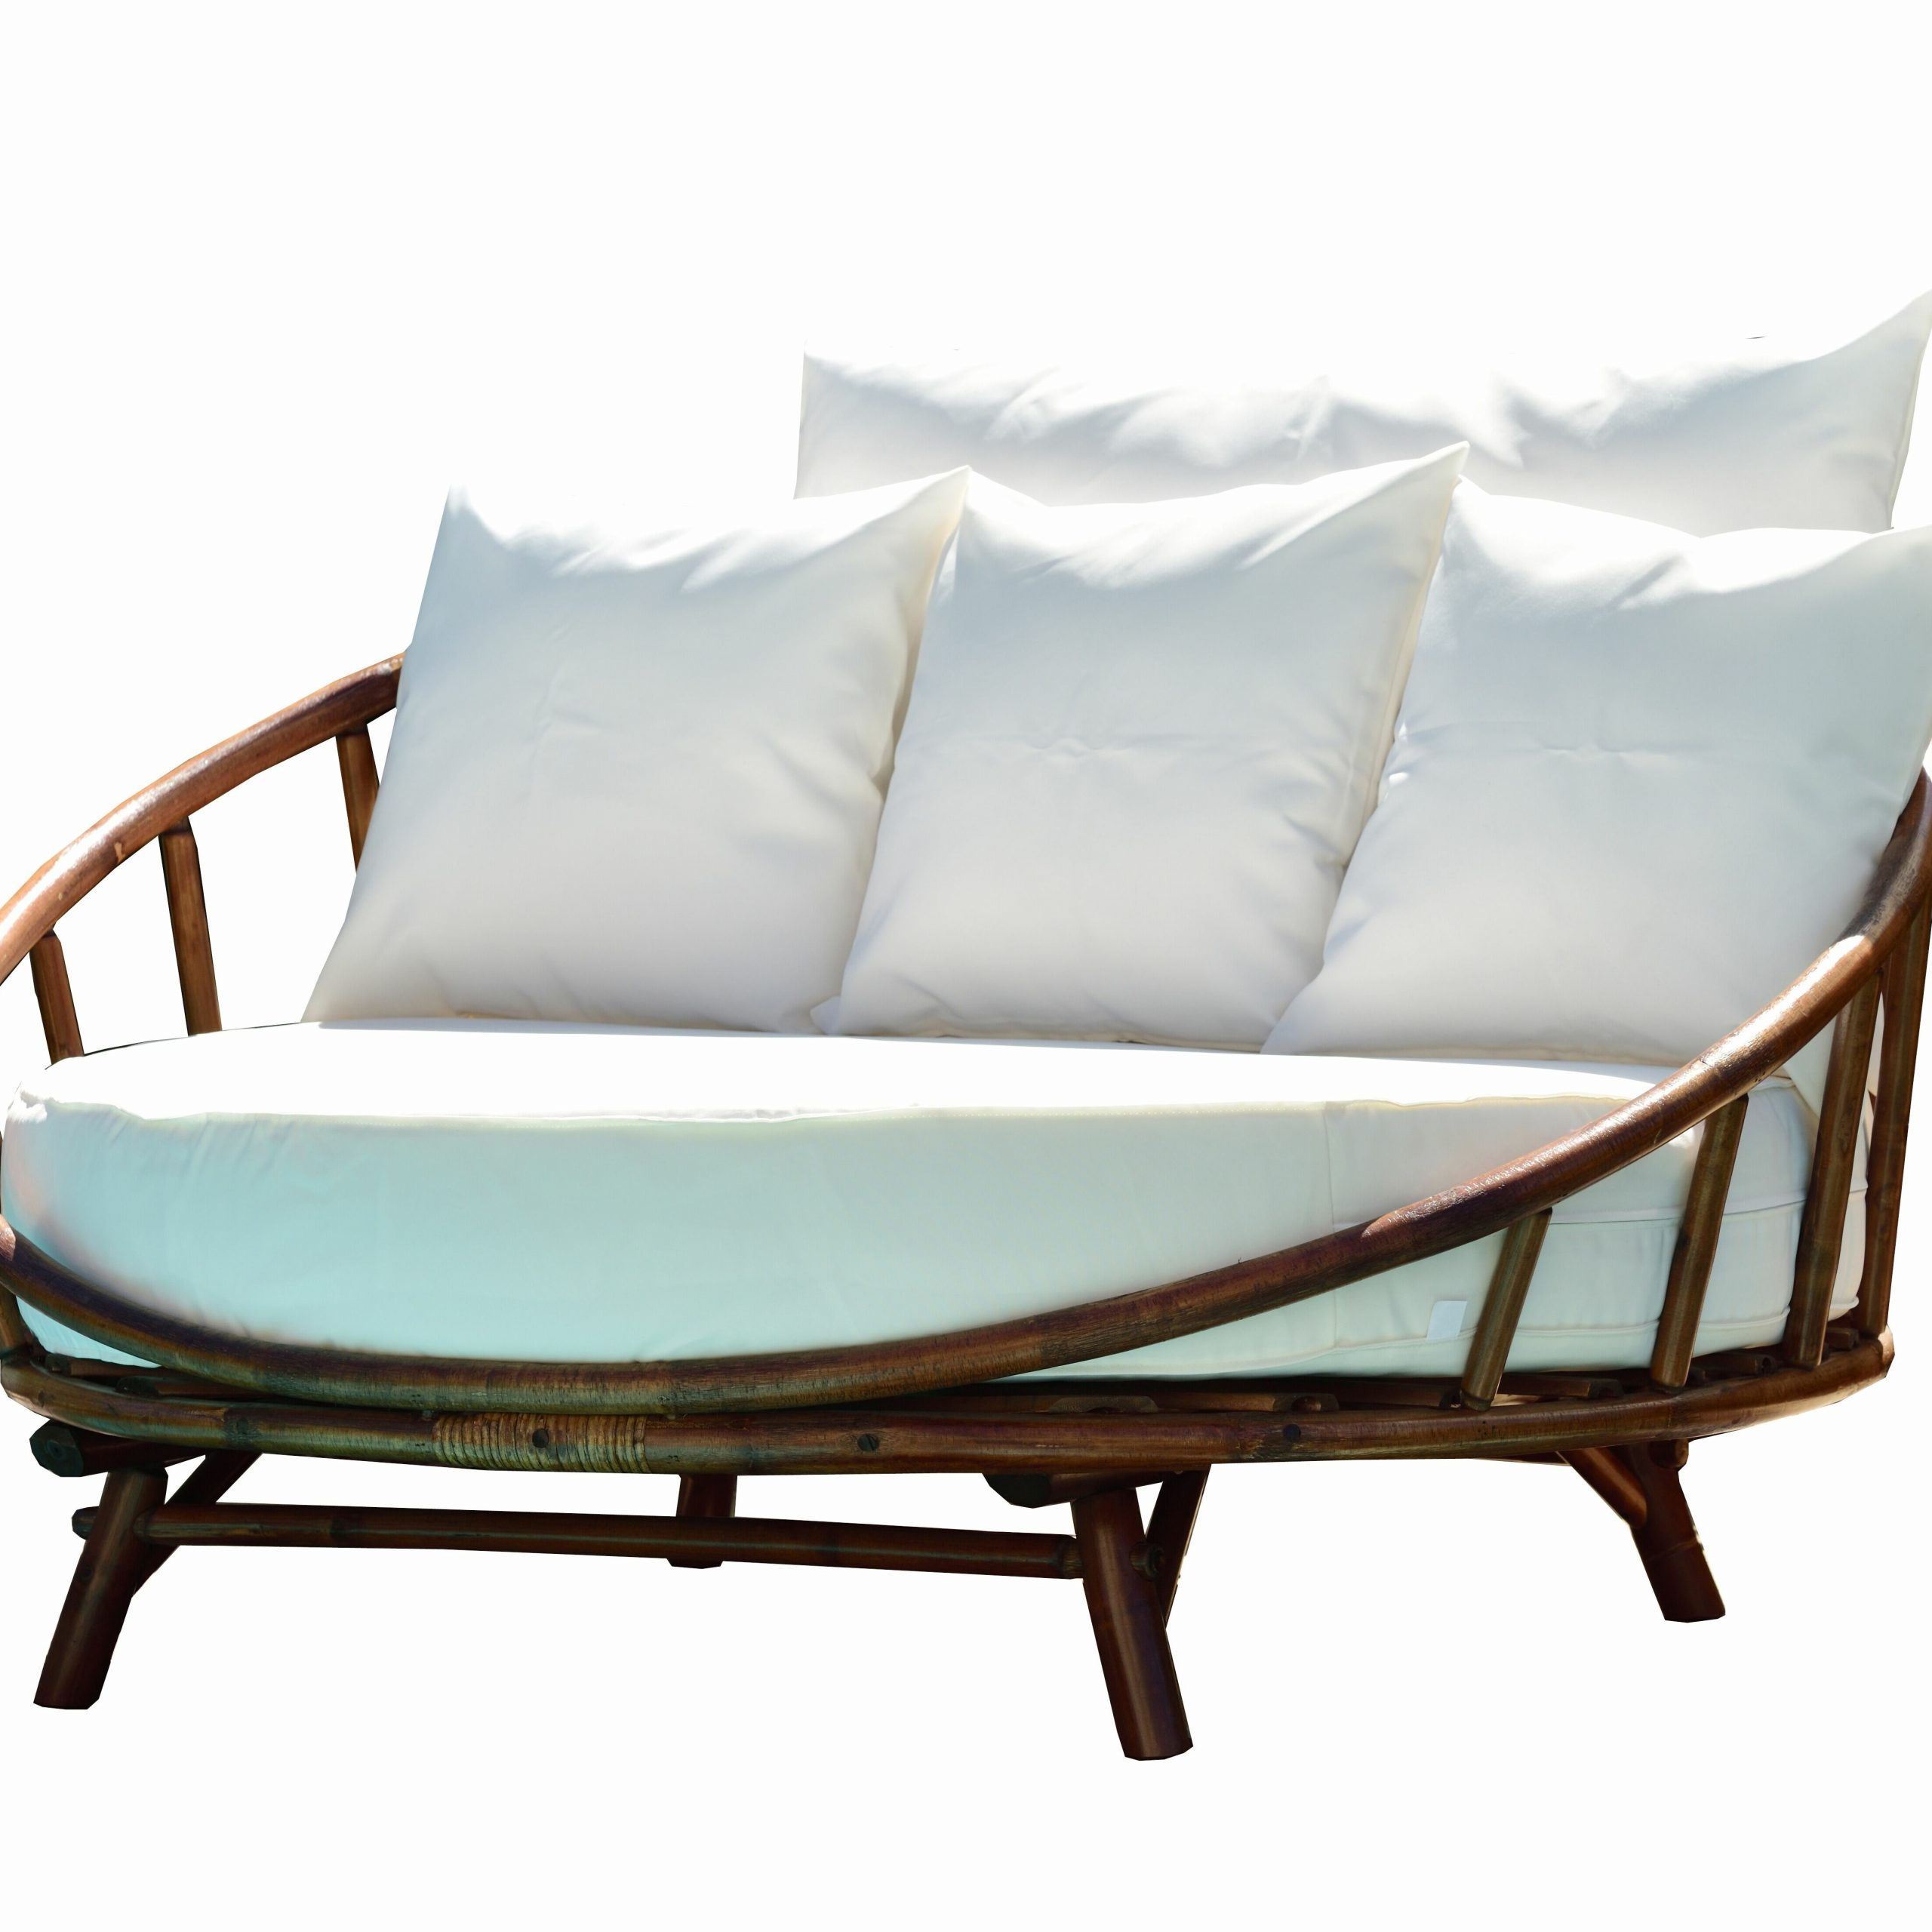 Bodine Patio Daybeds With Cushions Throughout Most Up To Date Bayou Breeze Olu Bamboo Large Round Patio Daybed With Cushions (View 10 of 25)